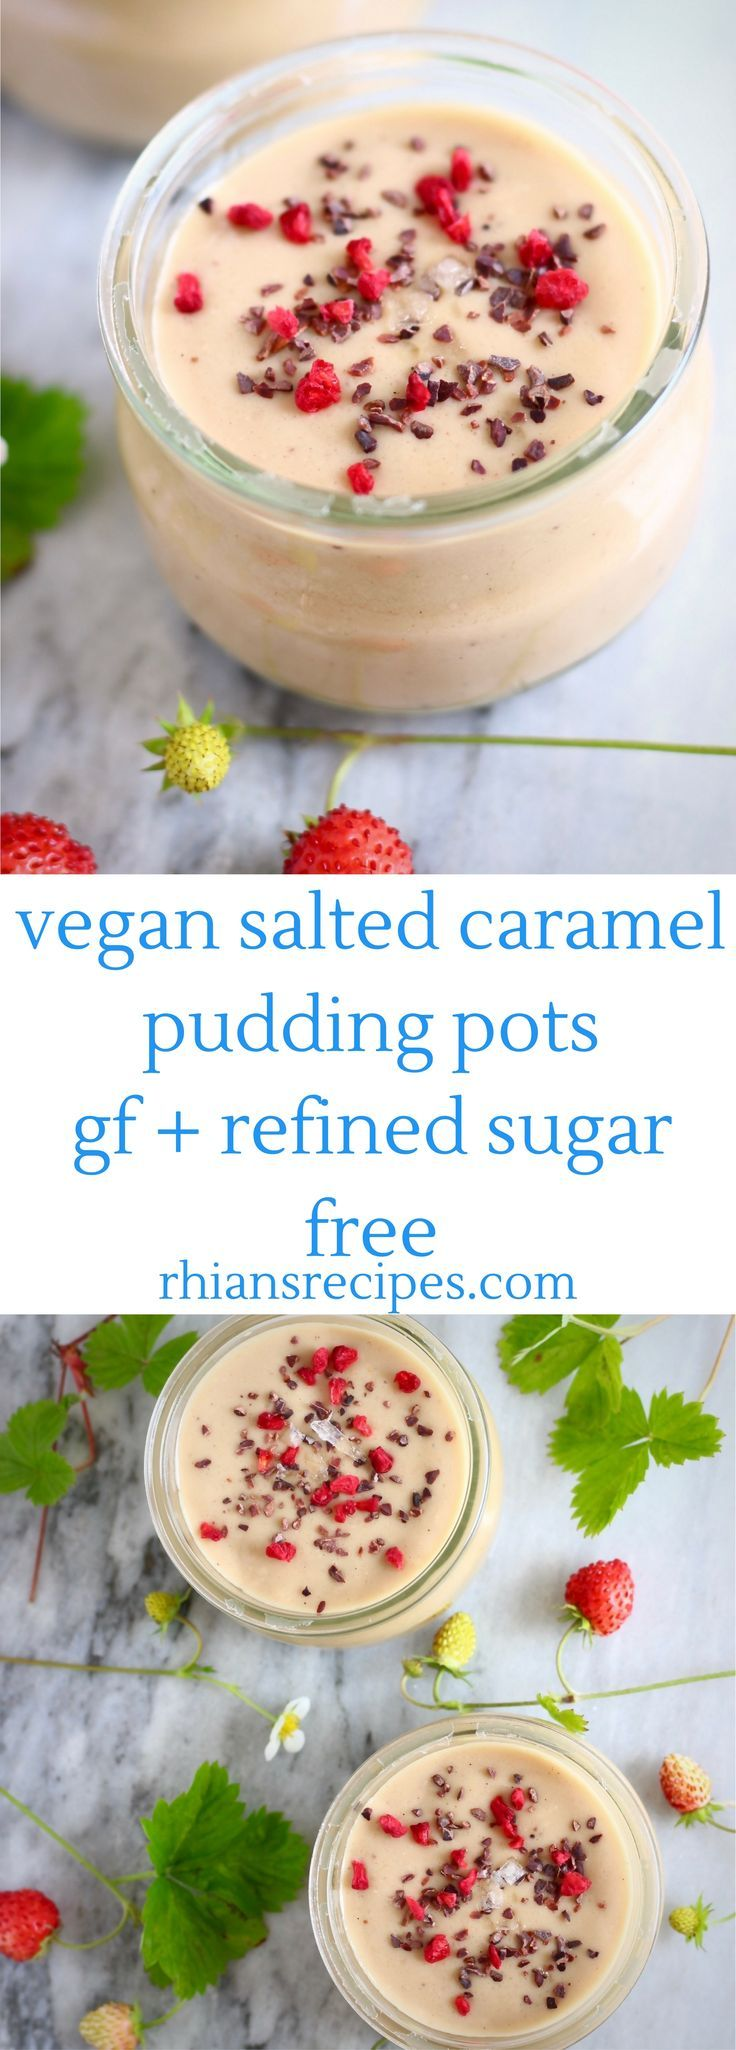 Vegan Salted Caramel Pudding Pots - 6 ingredients, refined sugar free, gluten-free, nut-free optional! Made with a coconut sugar caramel and no blender required!